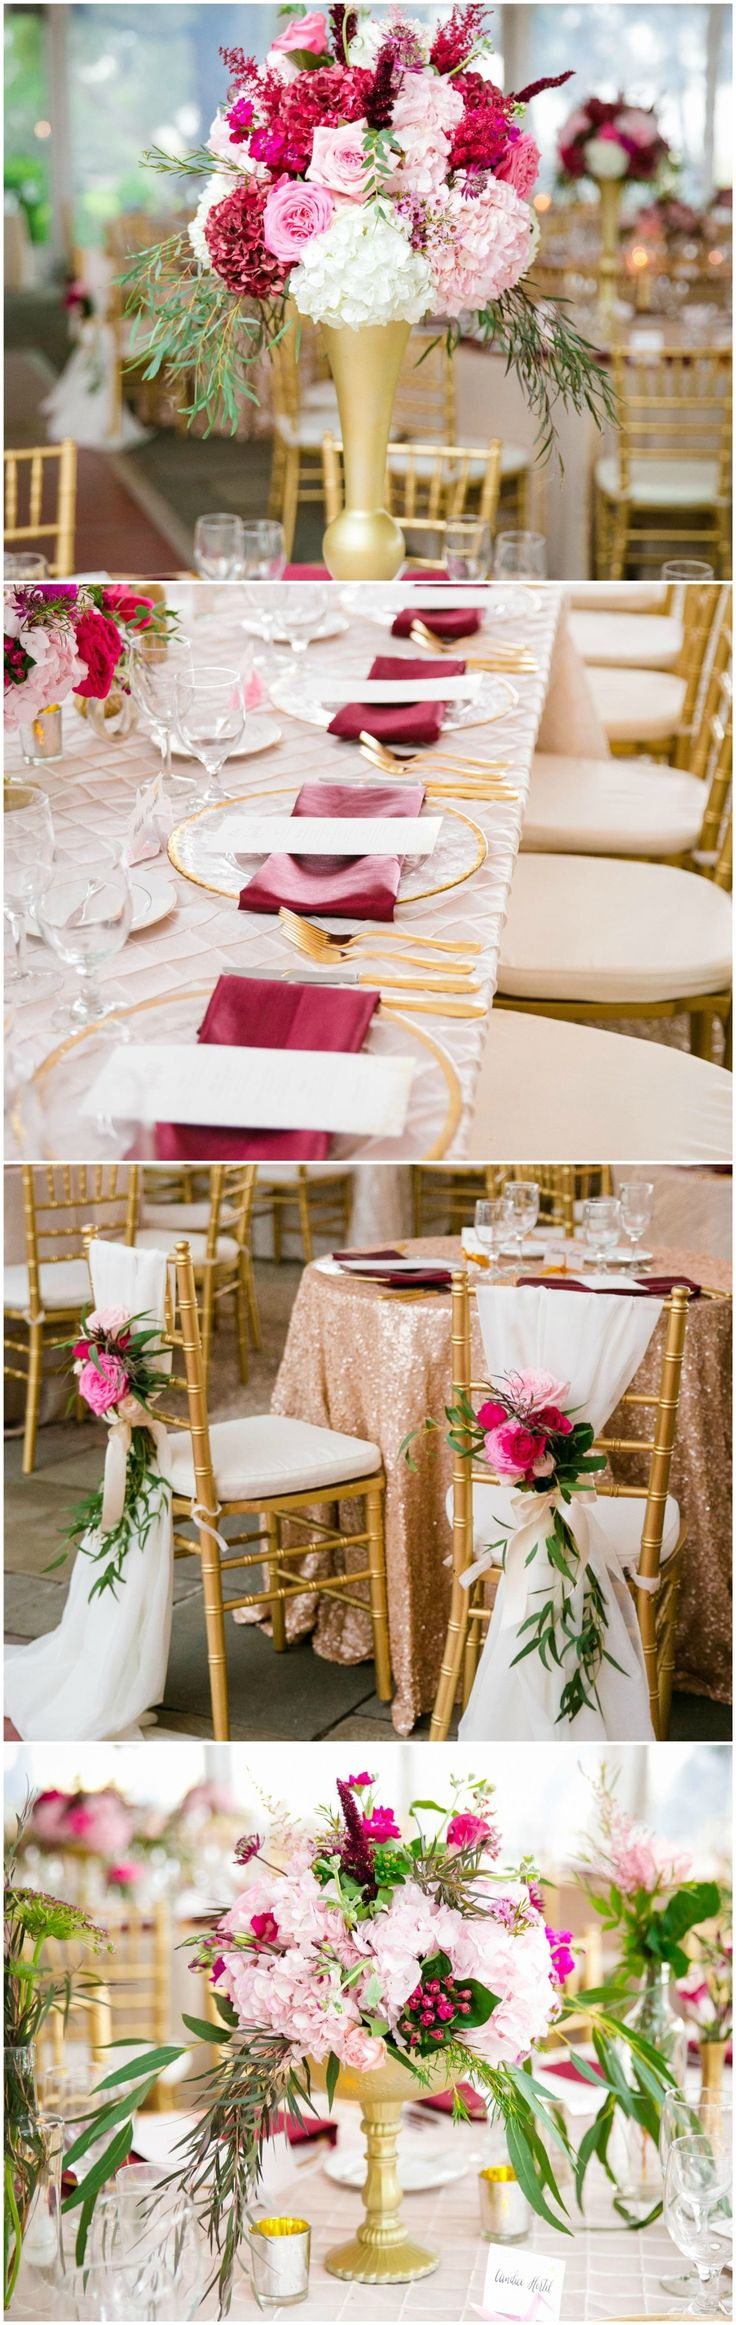 glam romantic charleston soire charleston sc gold tableclothwedding linenswedding